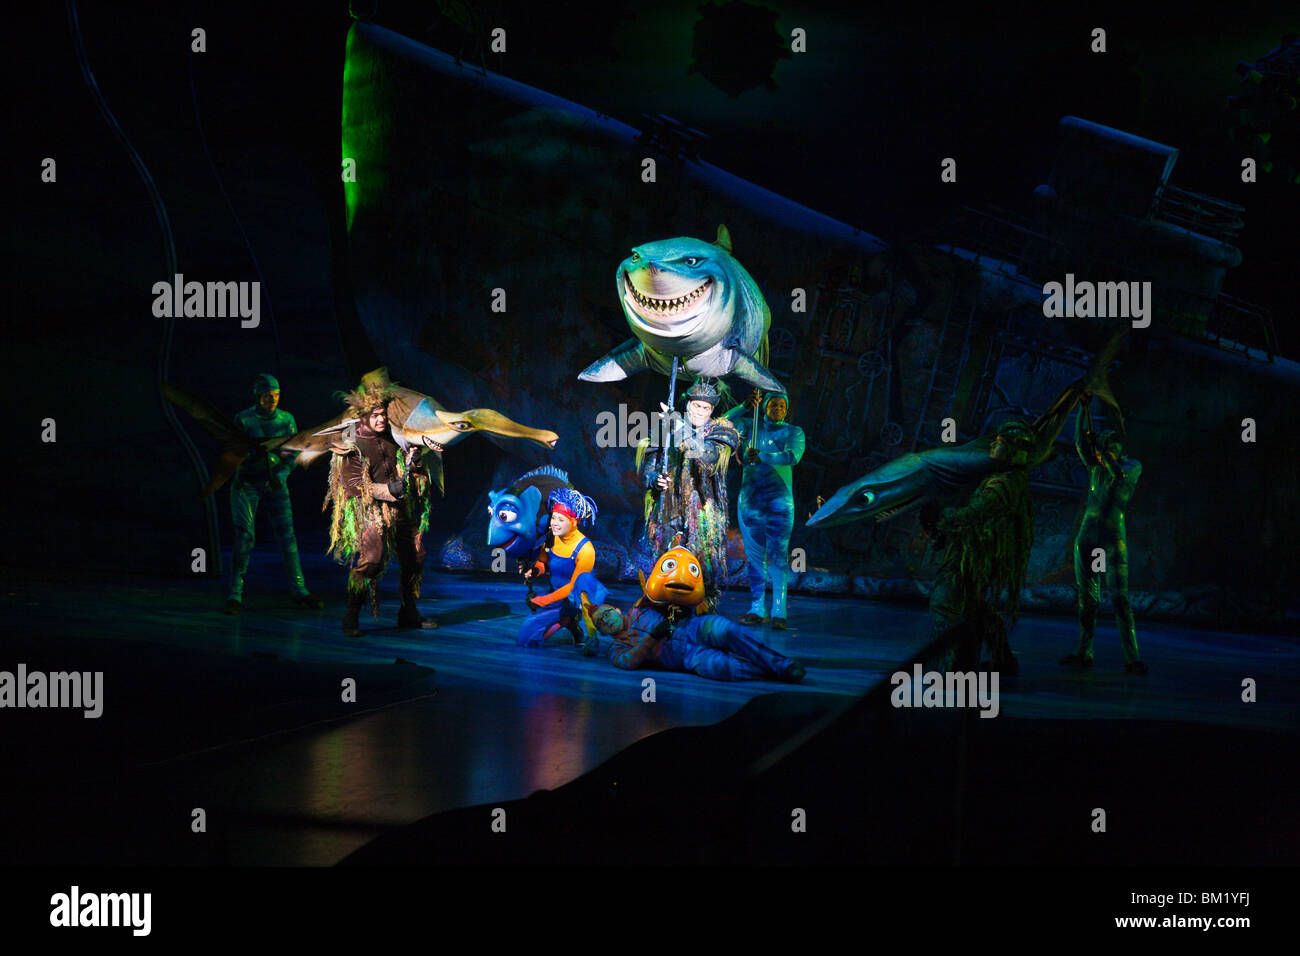 Orlando, FL - Jan 2009 - Finding Nemo - The Musical, features live performers and puppets at Disney's Animal - Stock Image